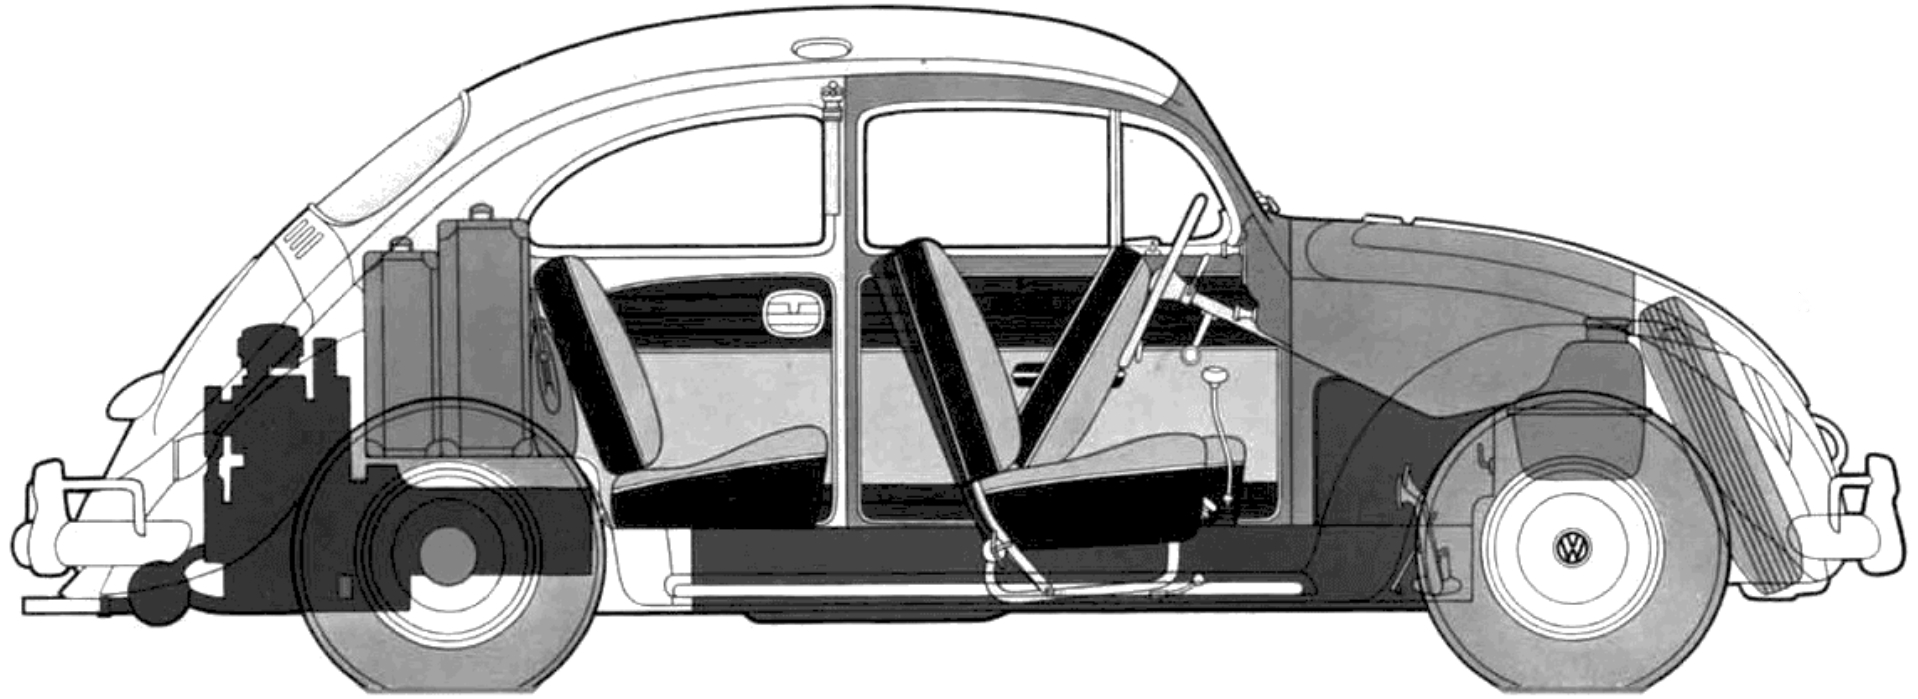 The design layout of the Volkswagen is nothing short of brilliant. Note how the heavy components, engine and transmission, suspension and fuel tank are all kept low to achieve a low centre of gravity. (picture courtesy onlytruecars.com)